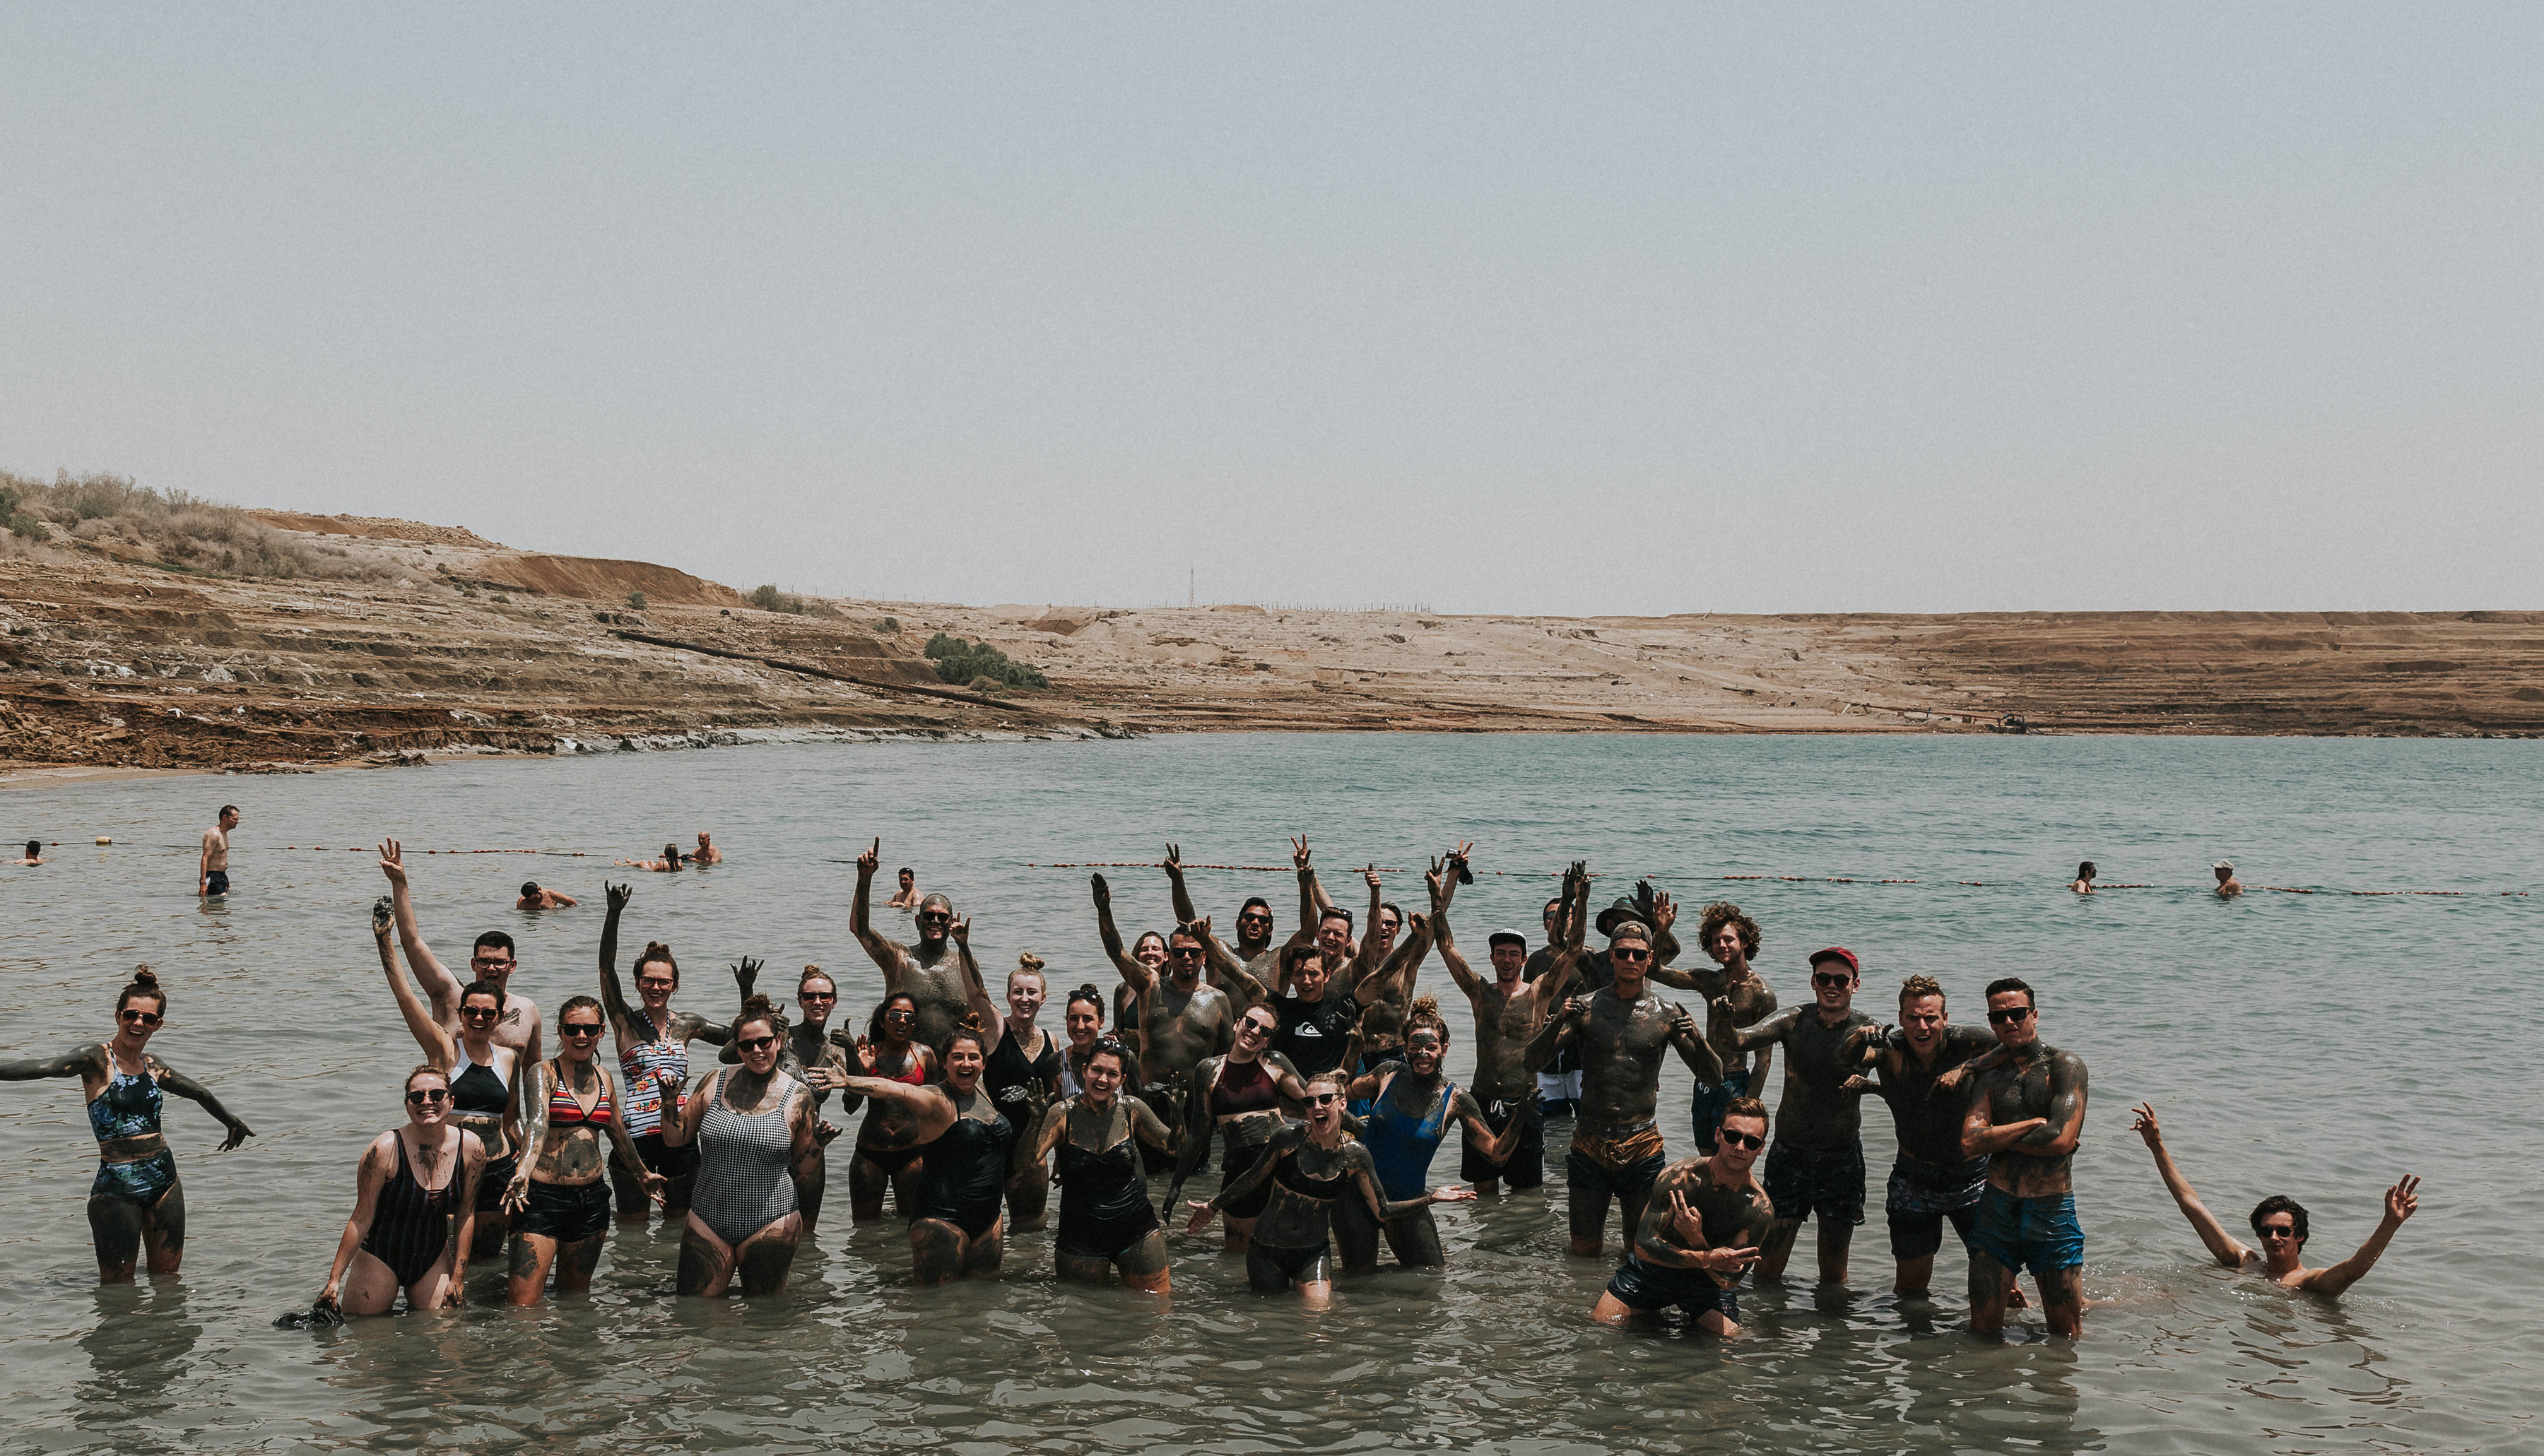 The Dead Sea was certainly a highlight, floating, covering ourselves in mud and trying our very hardest not to splash each other with the water.